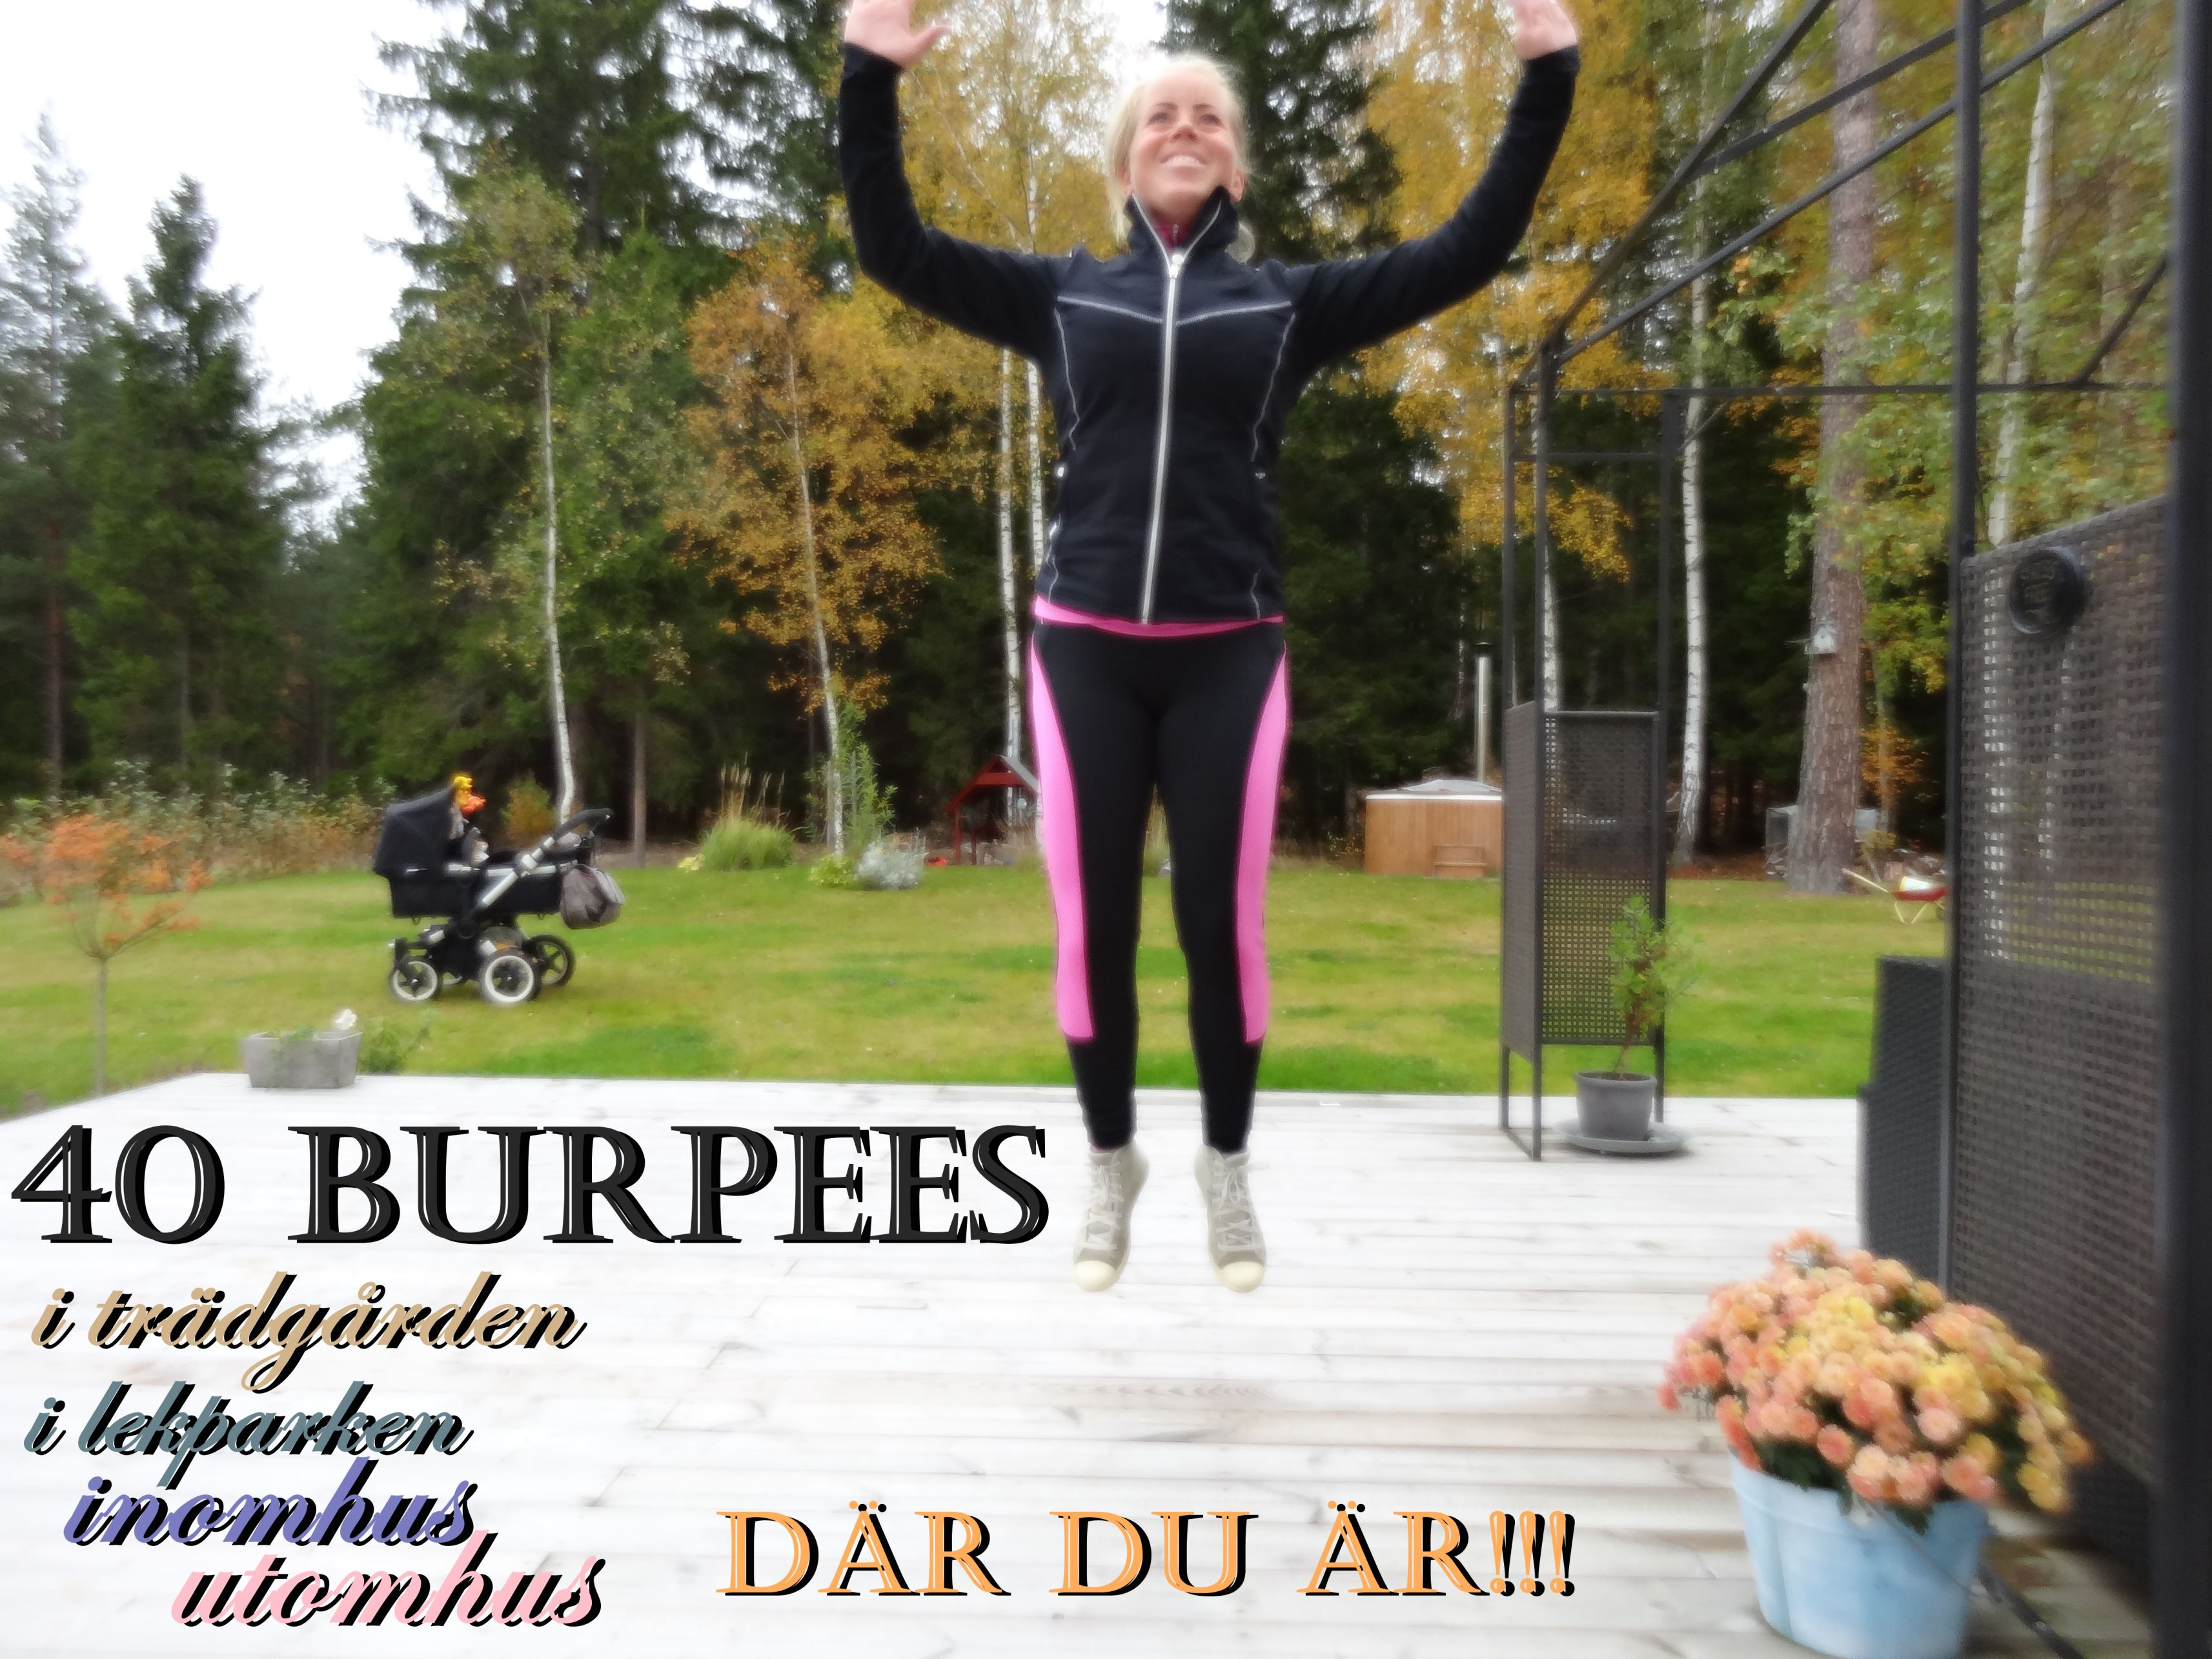 Burpees text